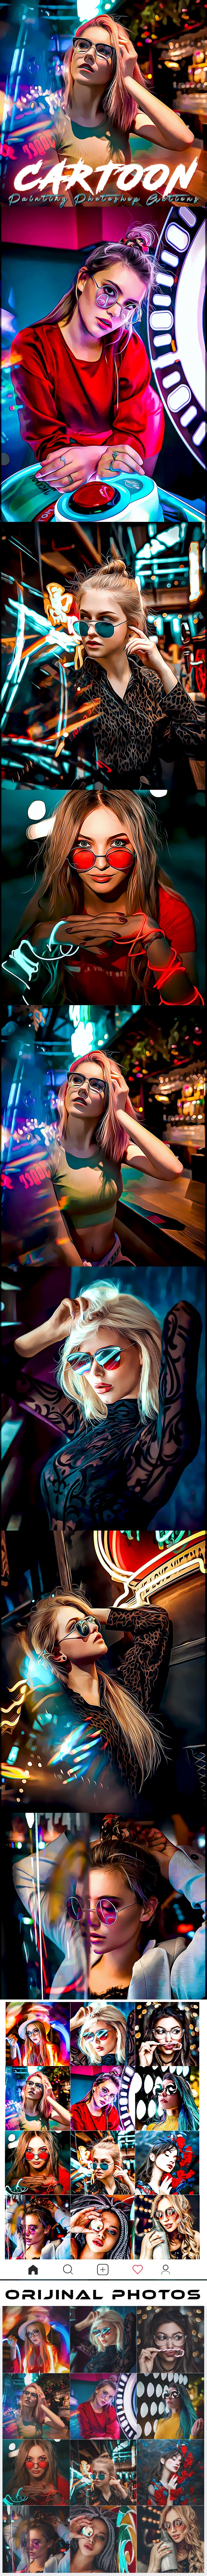 Cartoon Painting Photoshop Actions - Photo Effects Actions